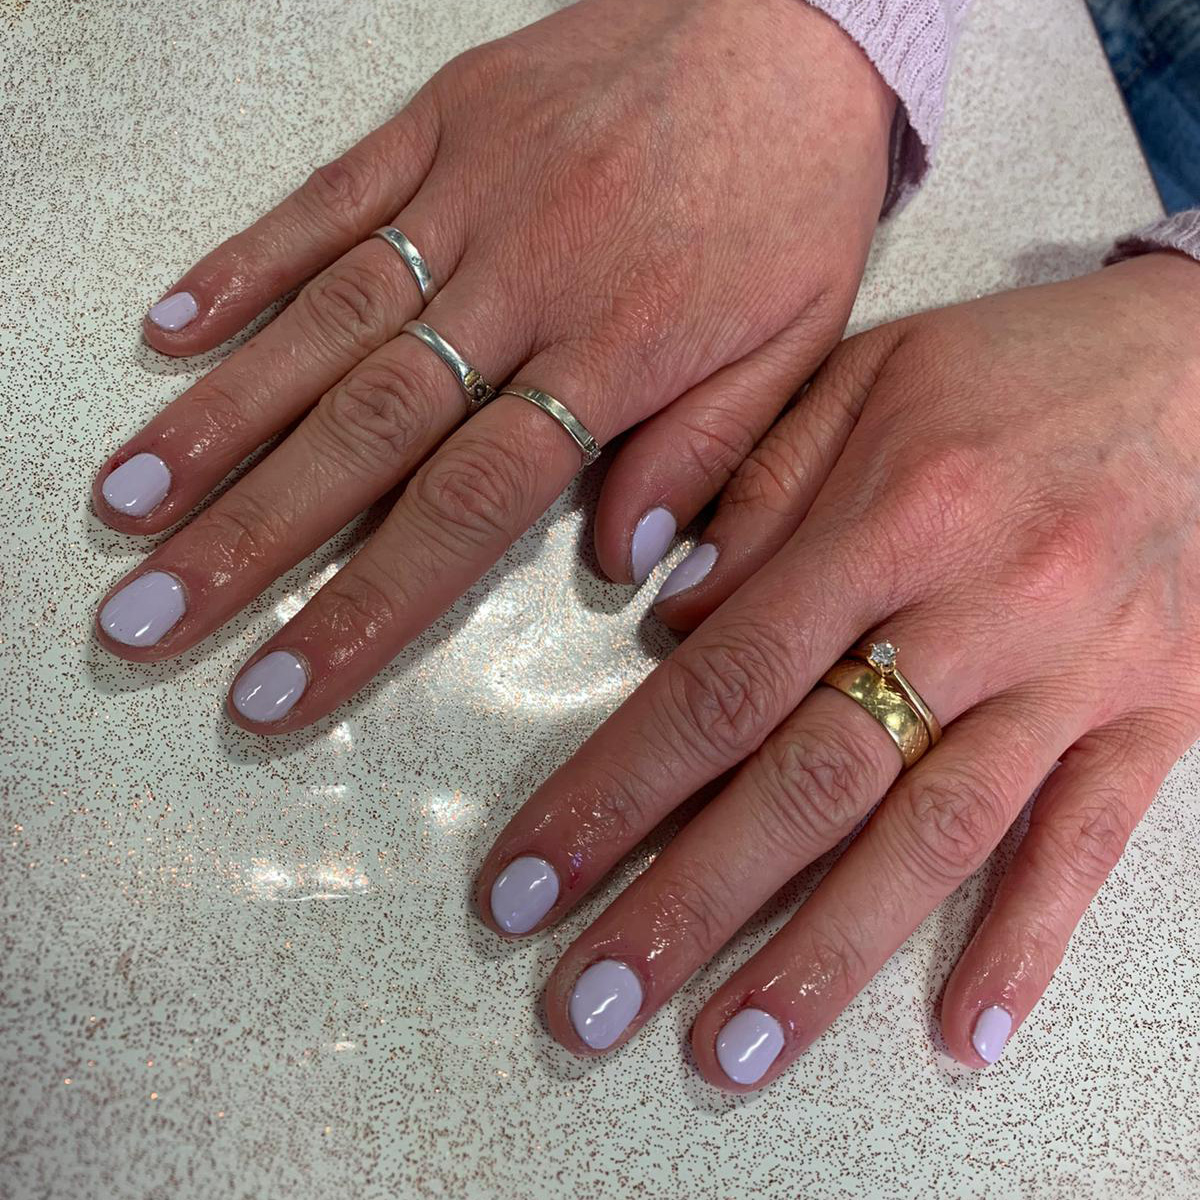 nails by natalie rose at Splendid Office mobile london manicures